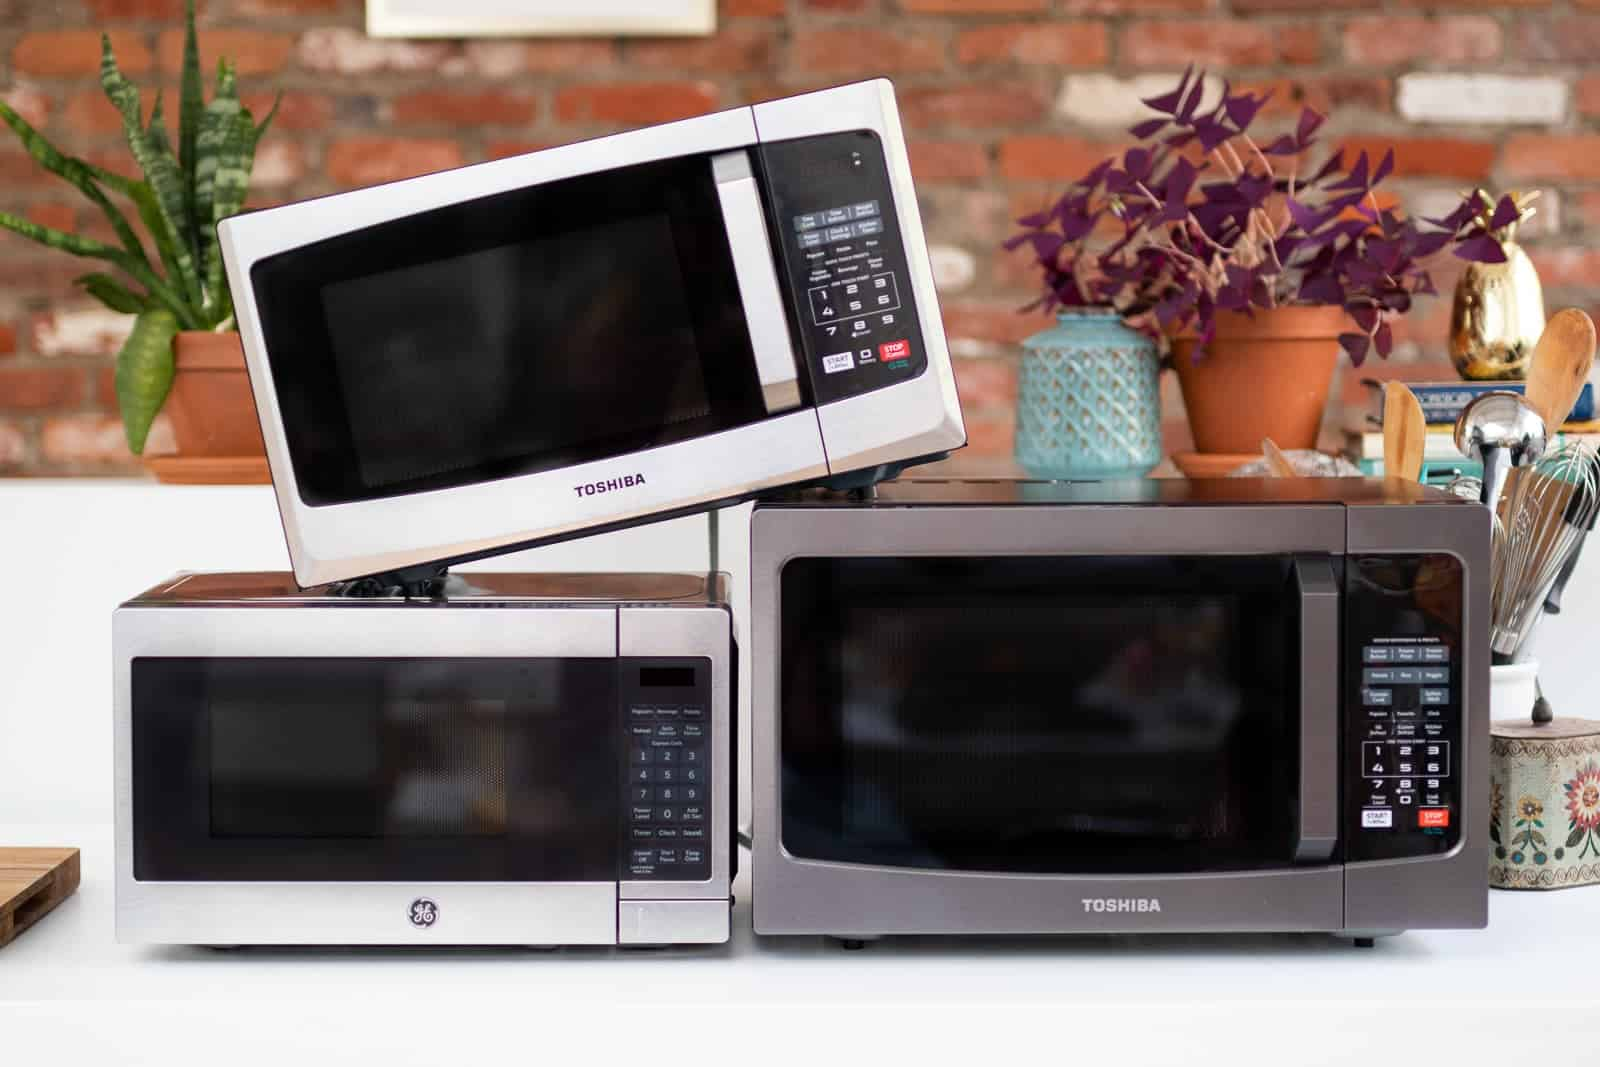 Different sized microwaves